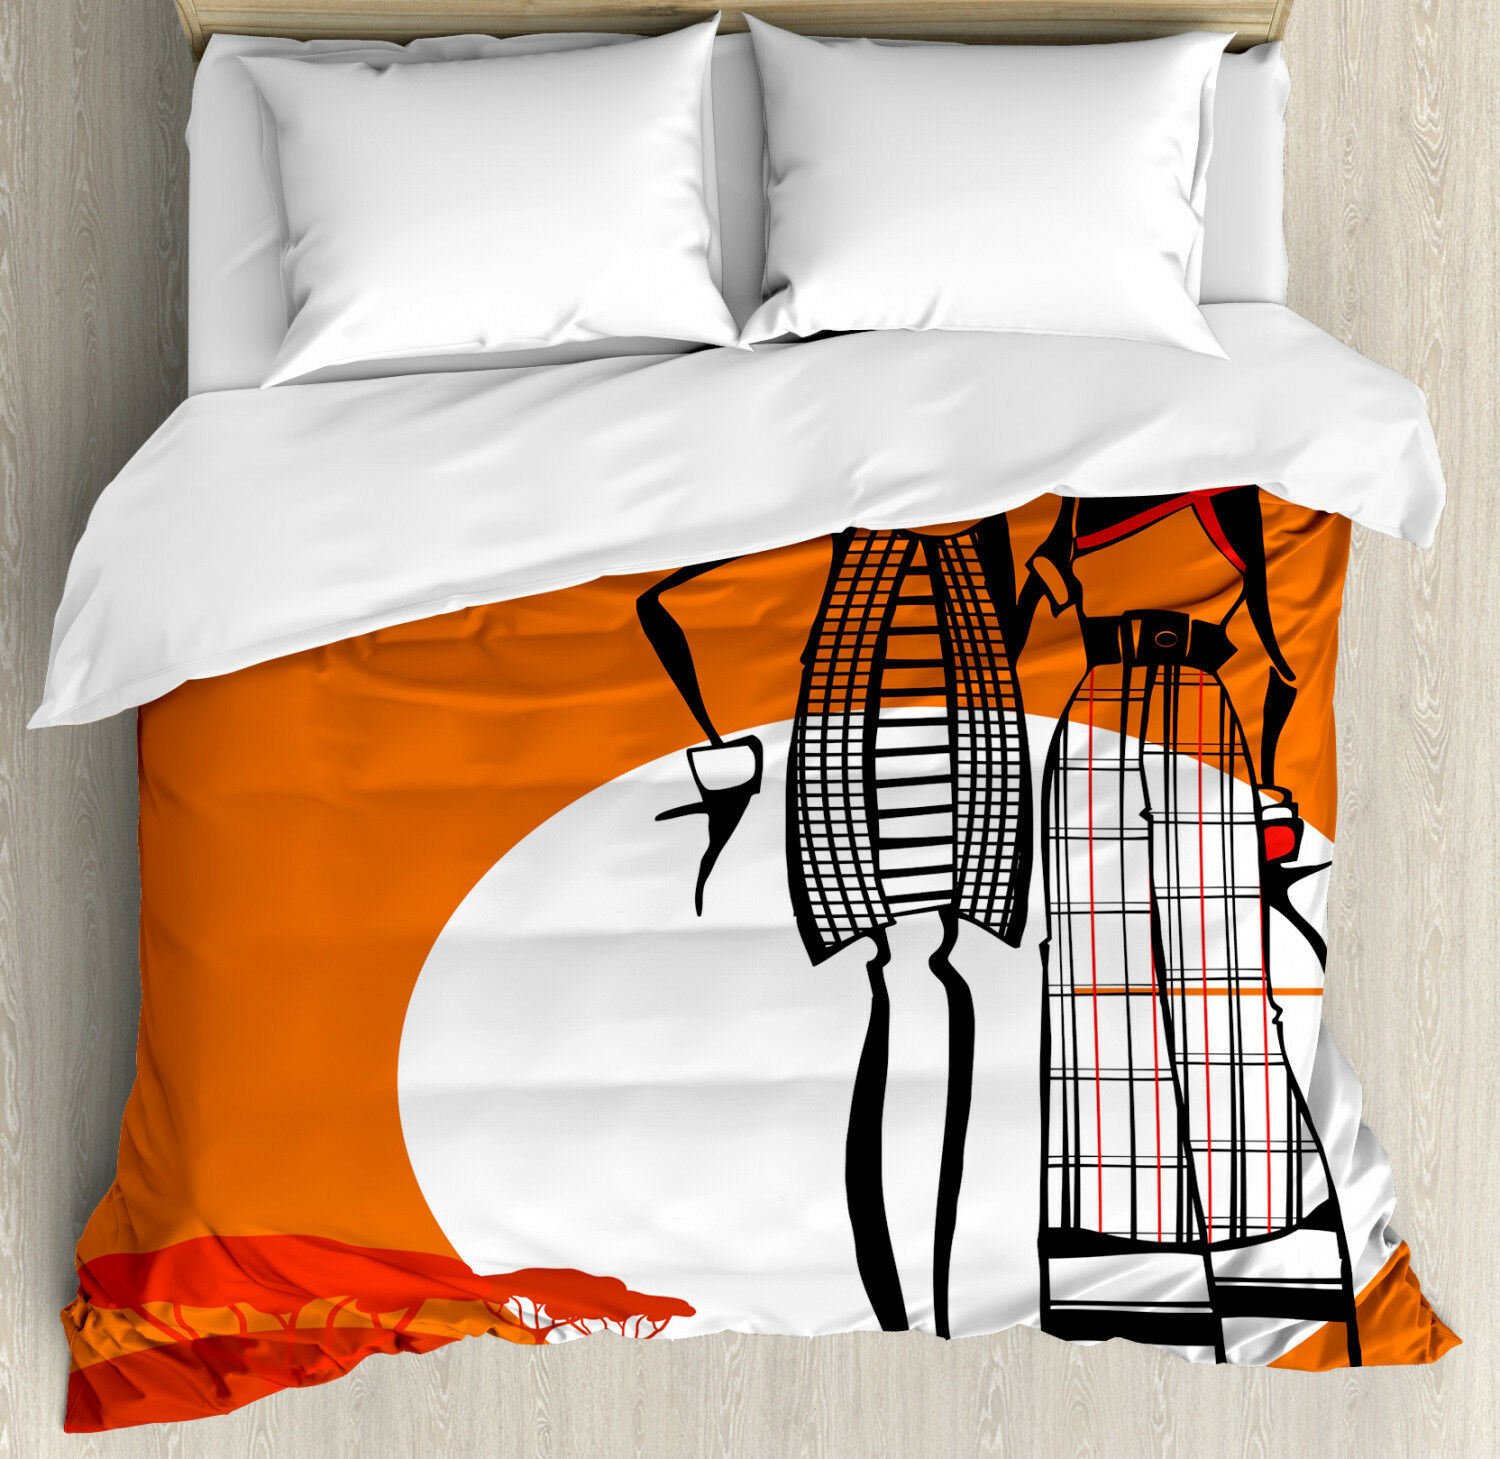 African Duvet Cover Set with Pillow Shams Stylish Women on Desert Print